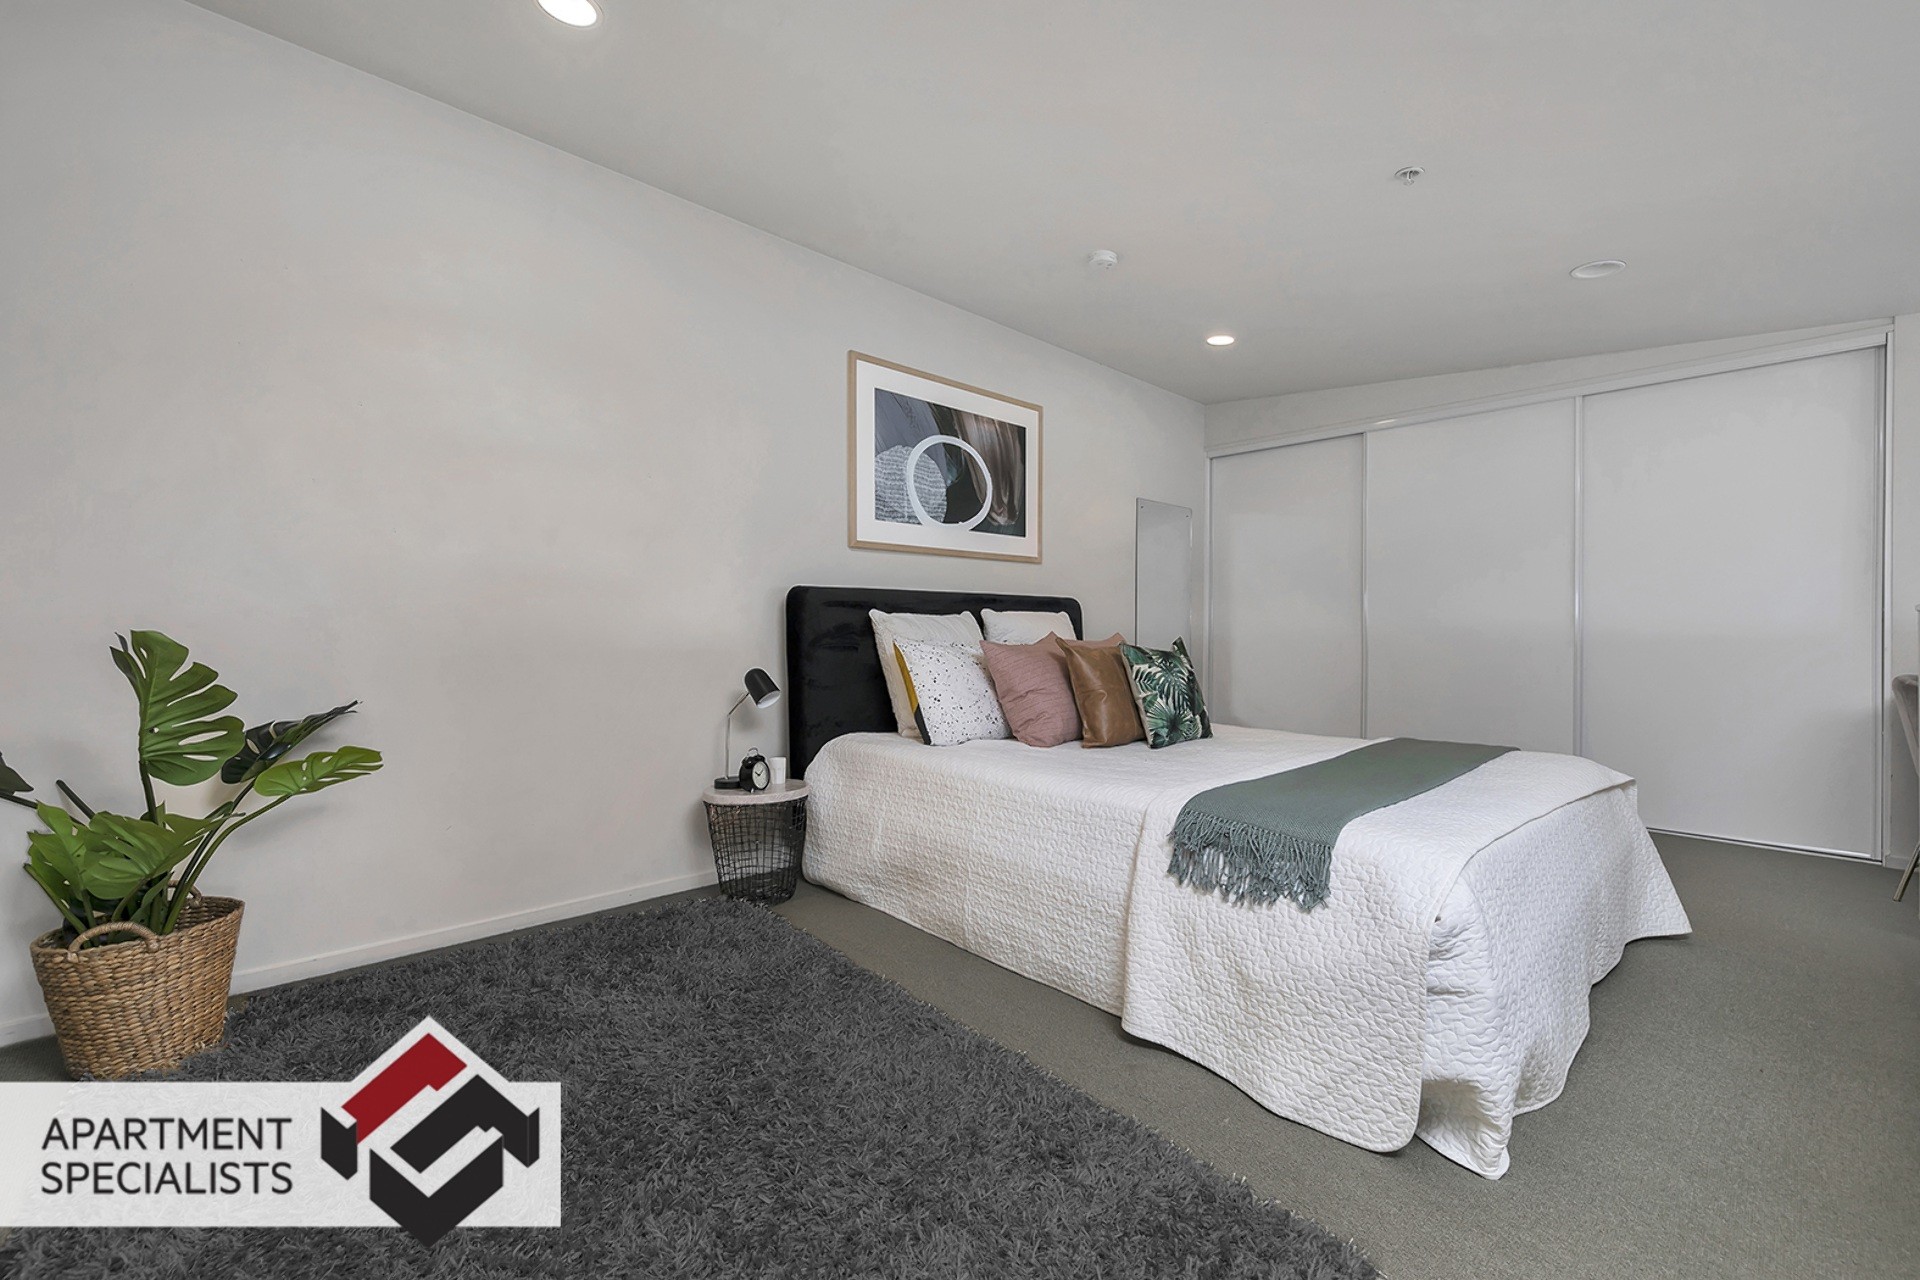 Hero | 5 Charlotte Street, Eden Terrace | Apartment Specialists